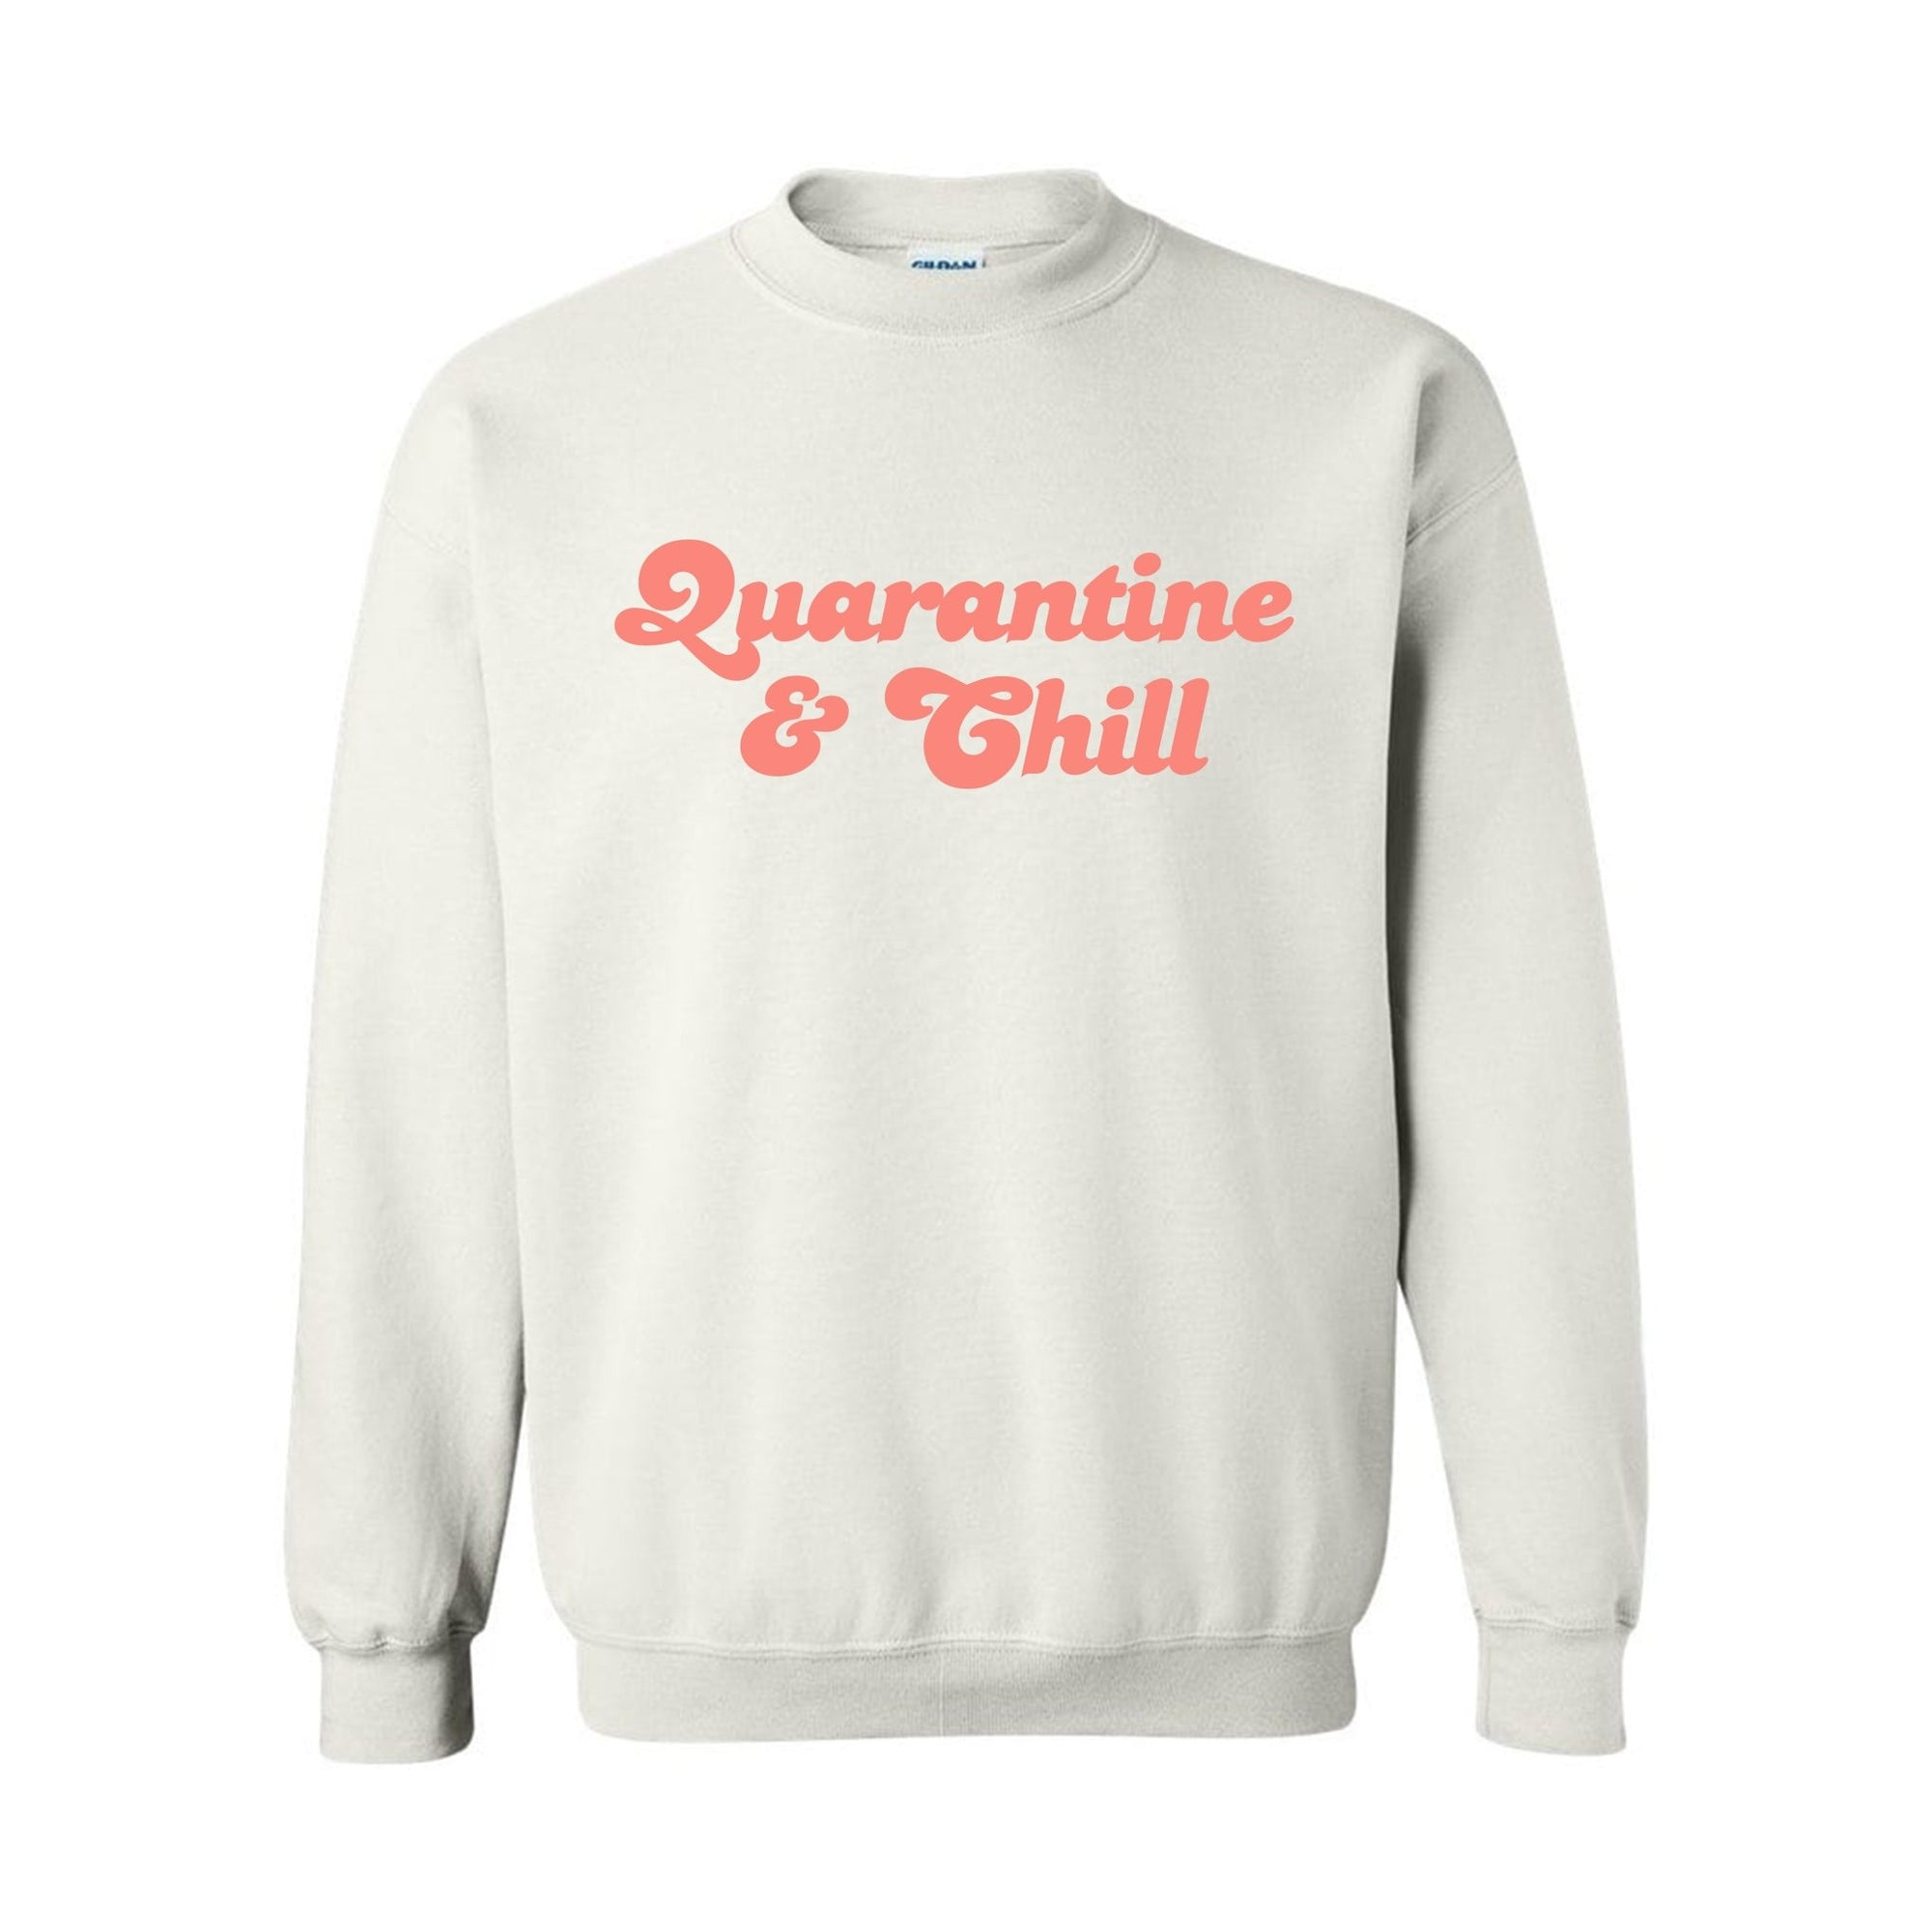 Quarantine & Chill Sweatshirt